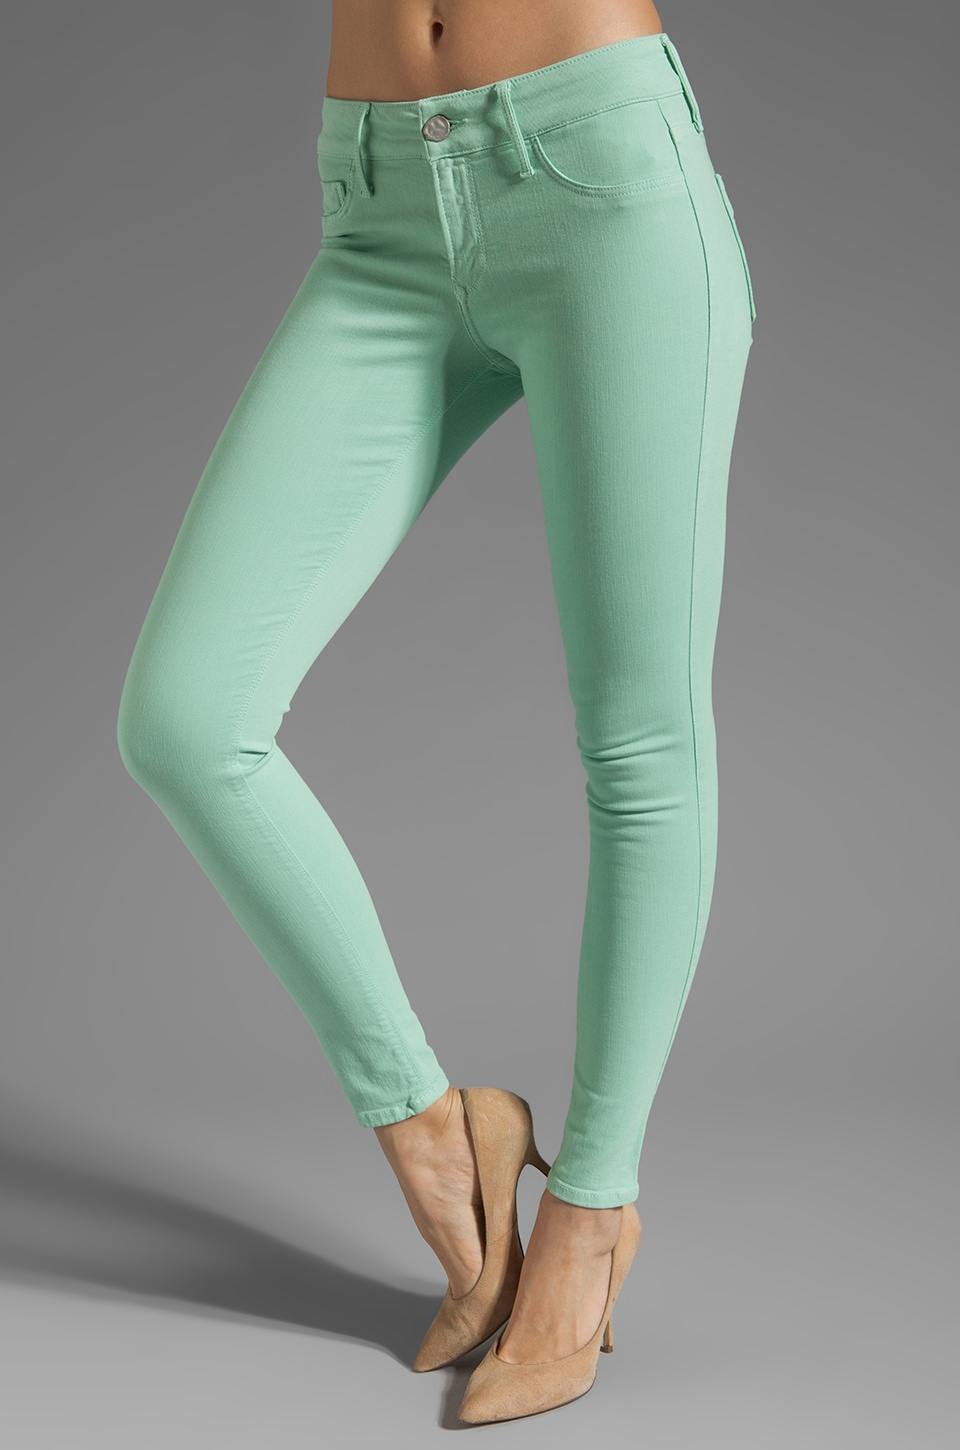 Black Orchid Skinny in Mint Candy